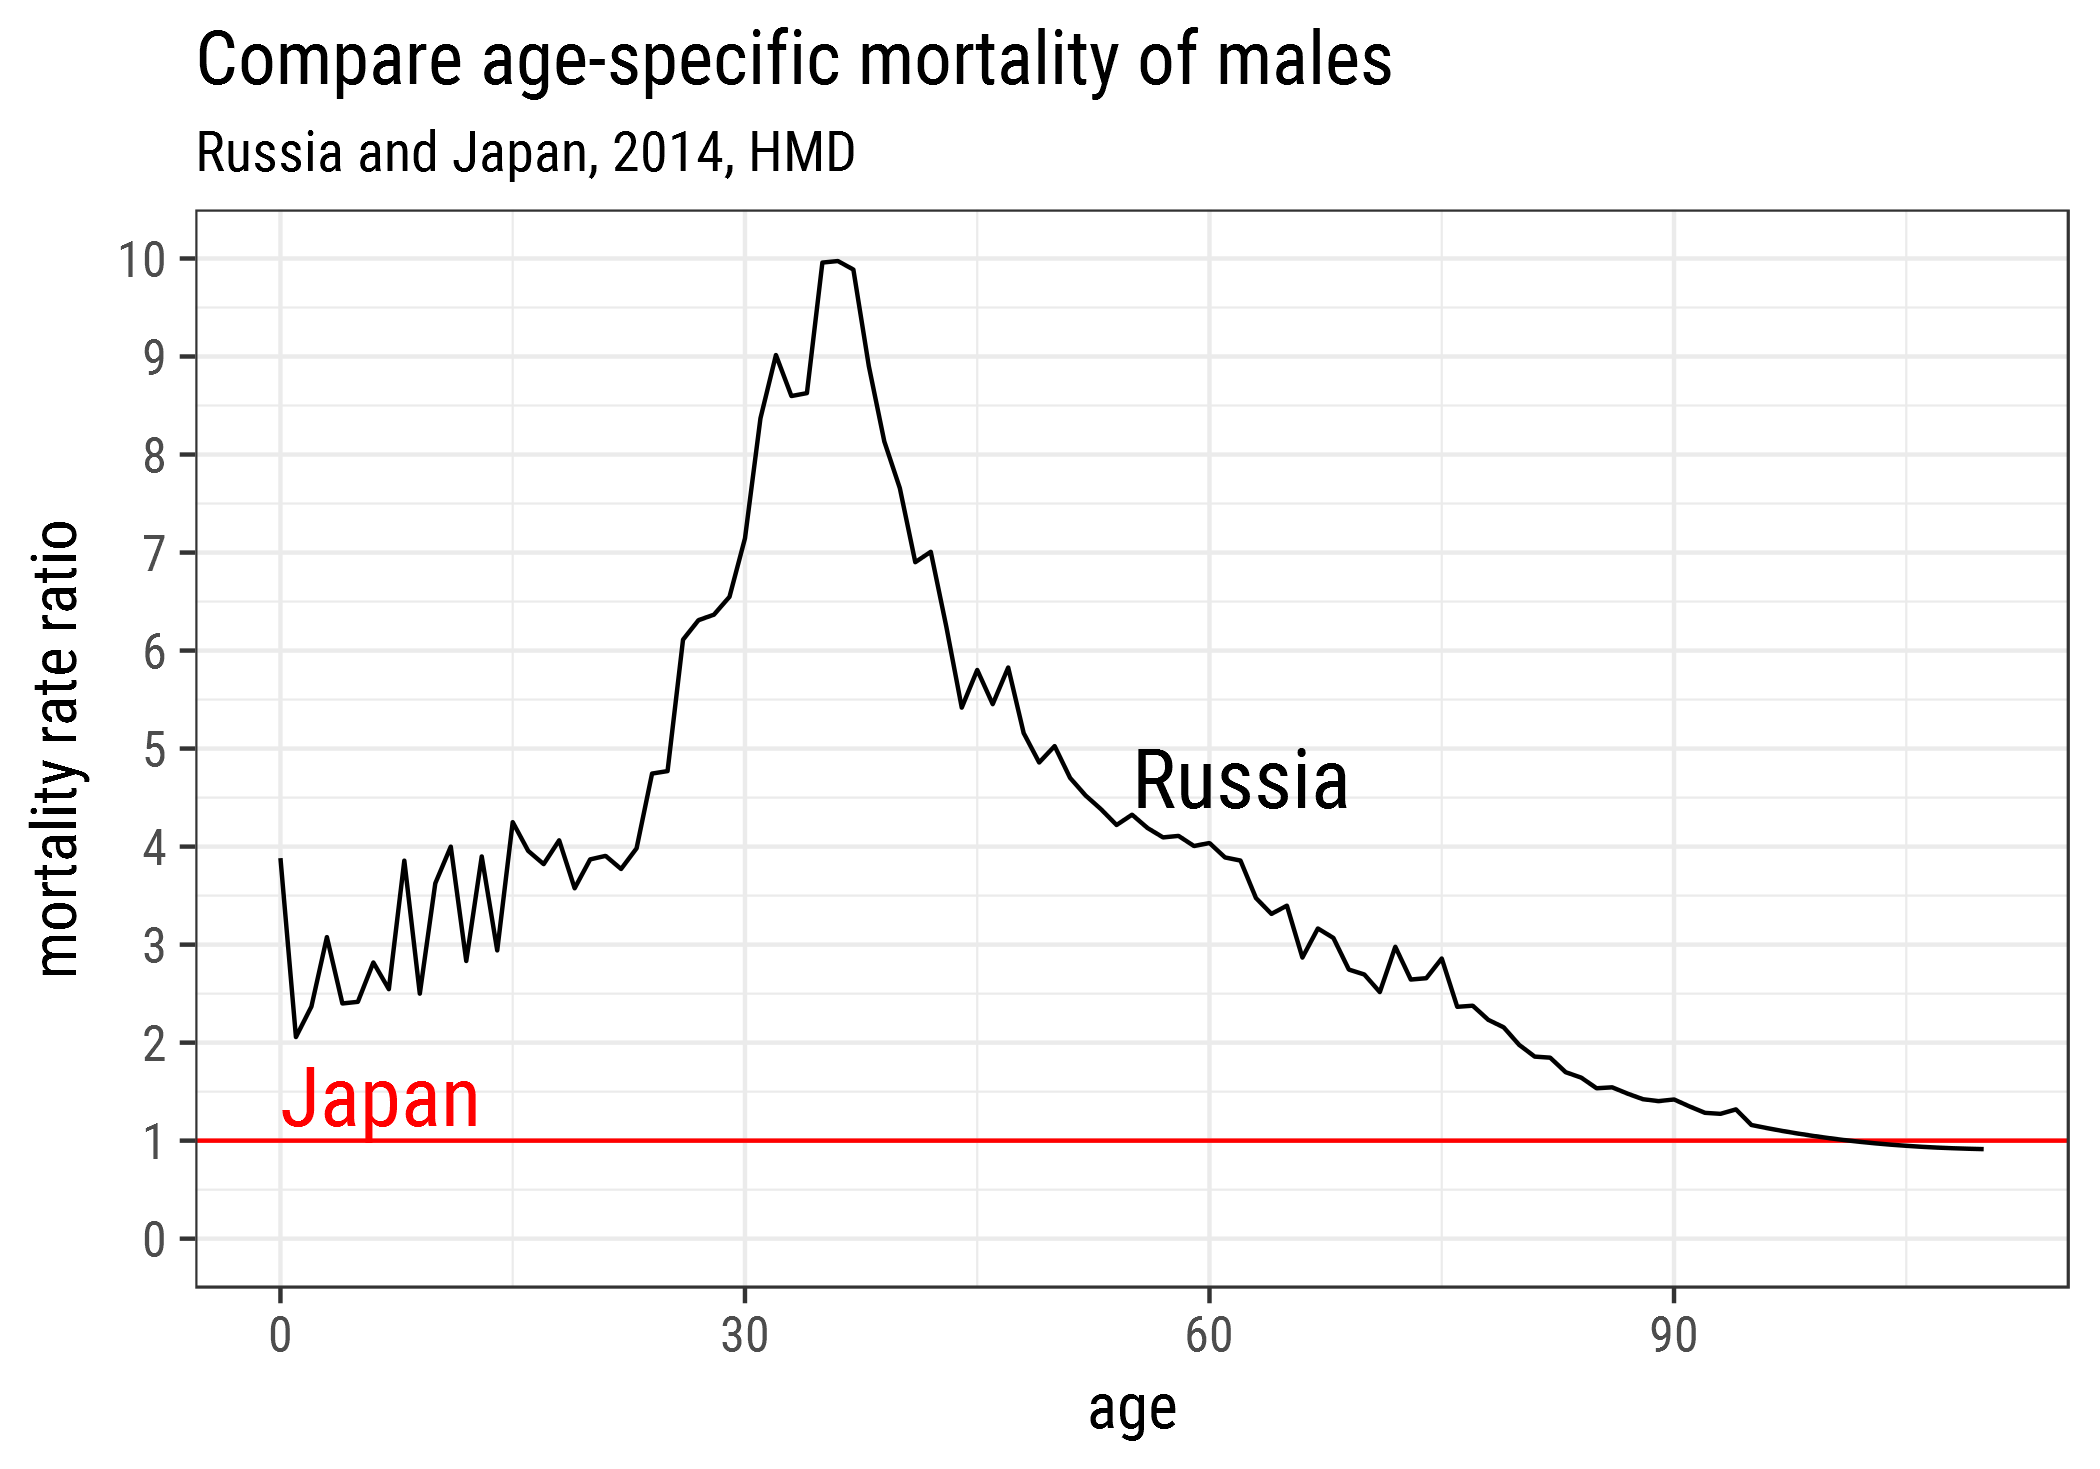 Male mortality in Russia and Japan